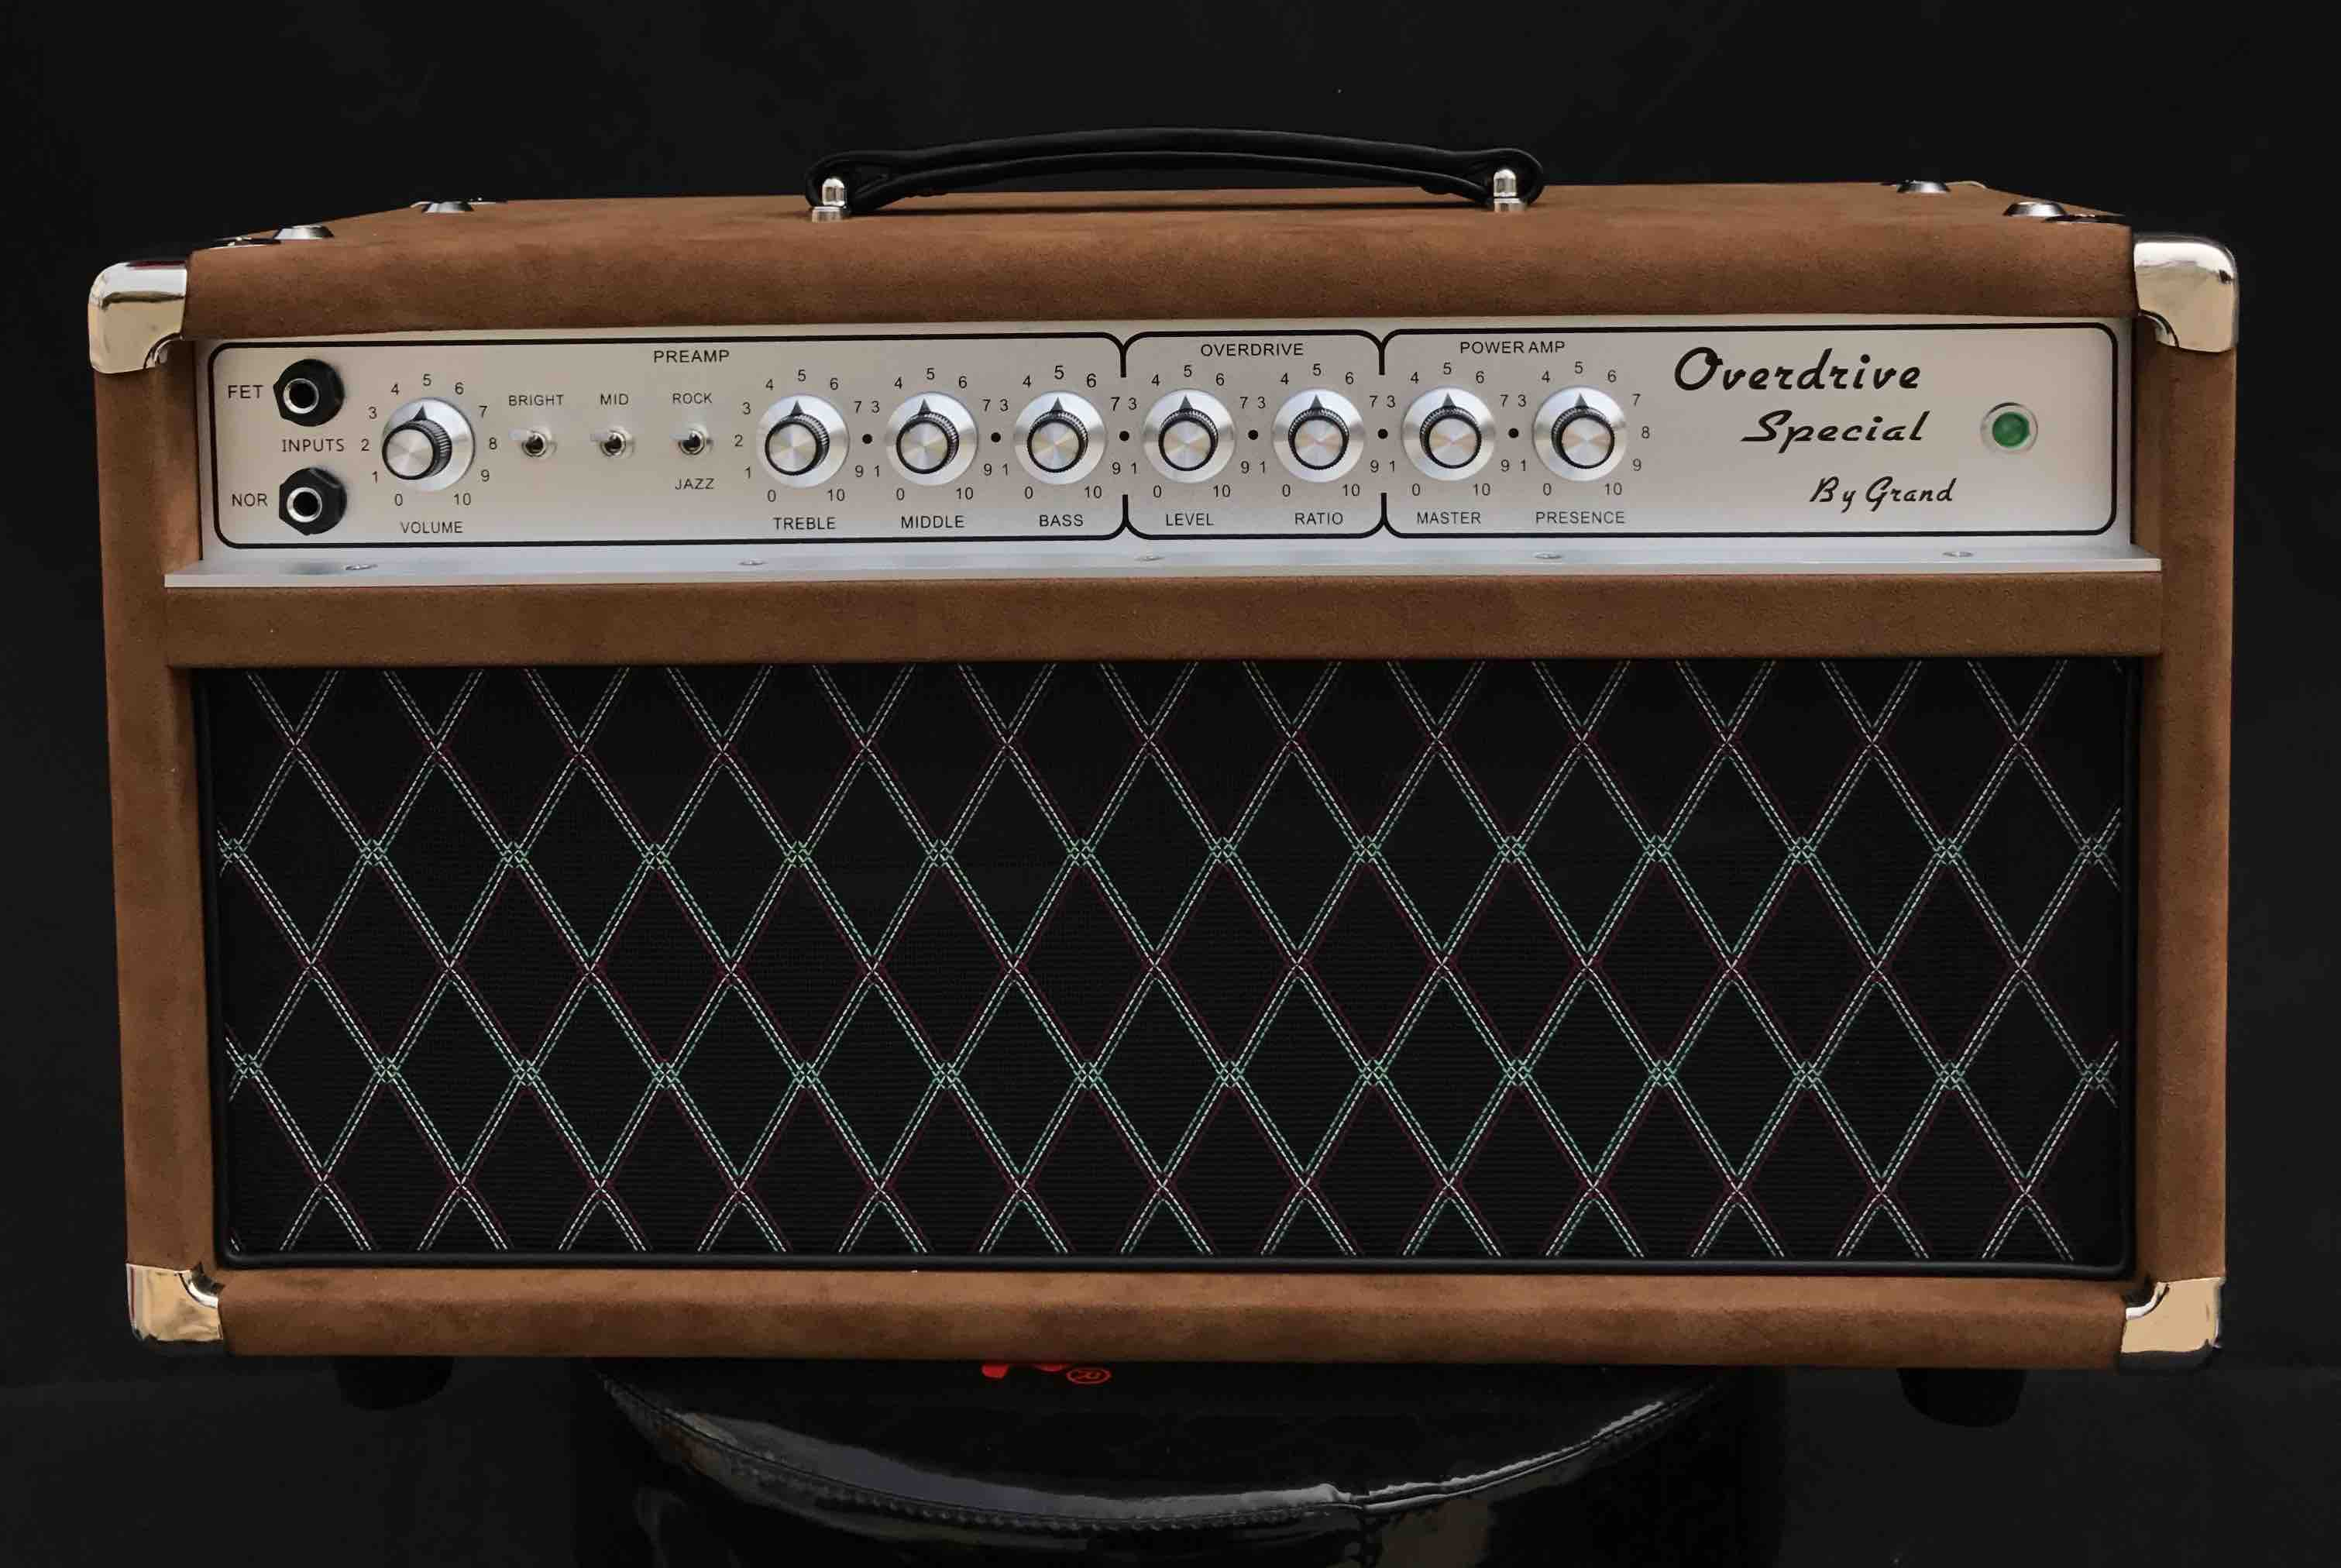 Overdrive Special by Grand ODS50 Handwired Guitar Amplifier Custom Guitar Amp Dumble Amp Tone OEM is Welcome